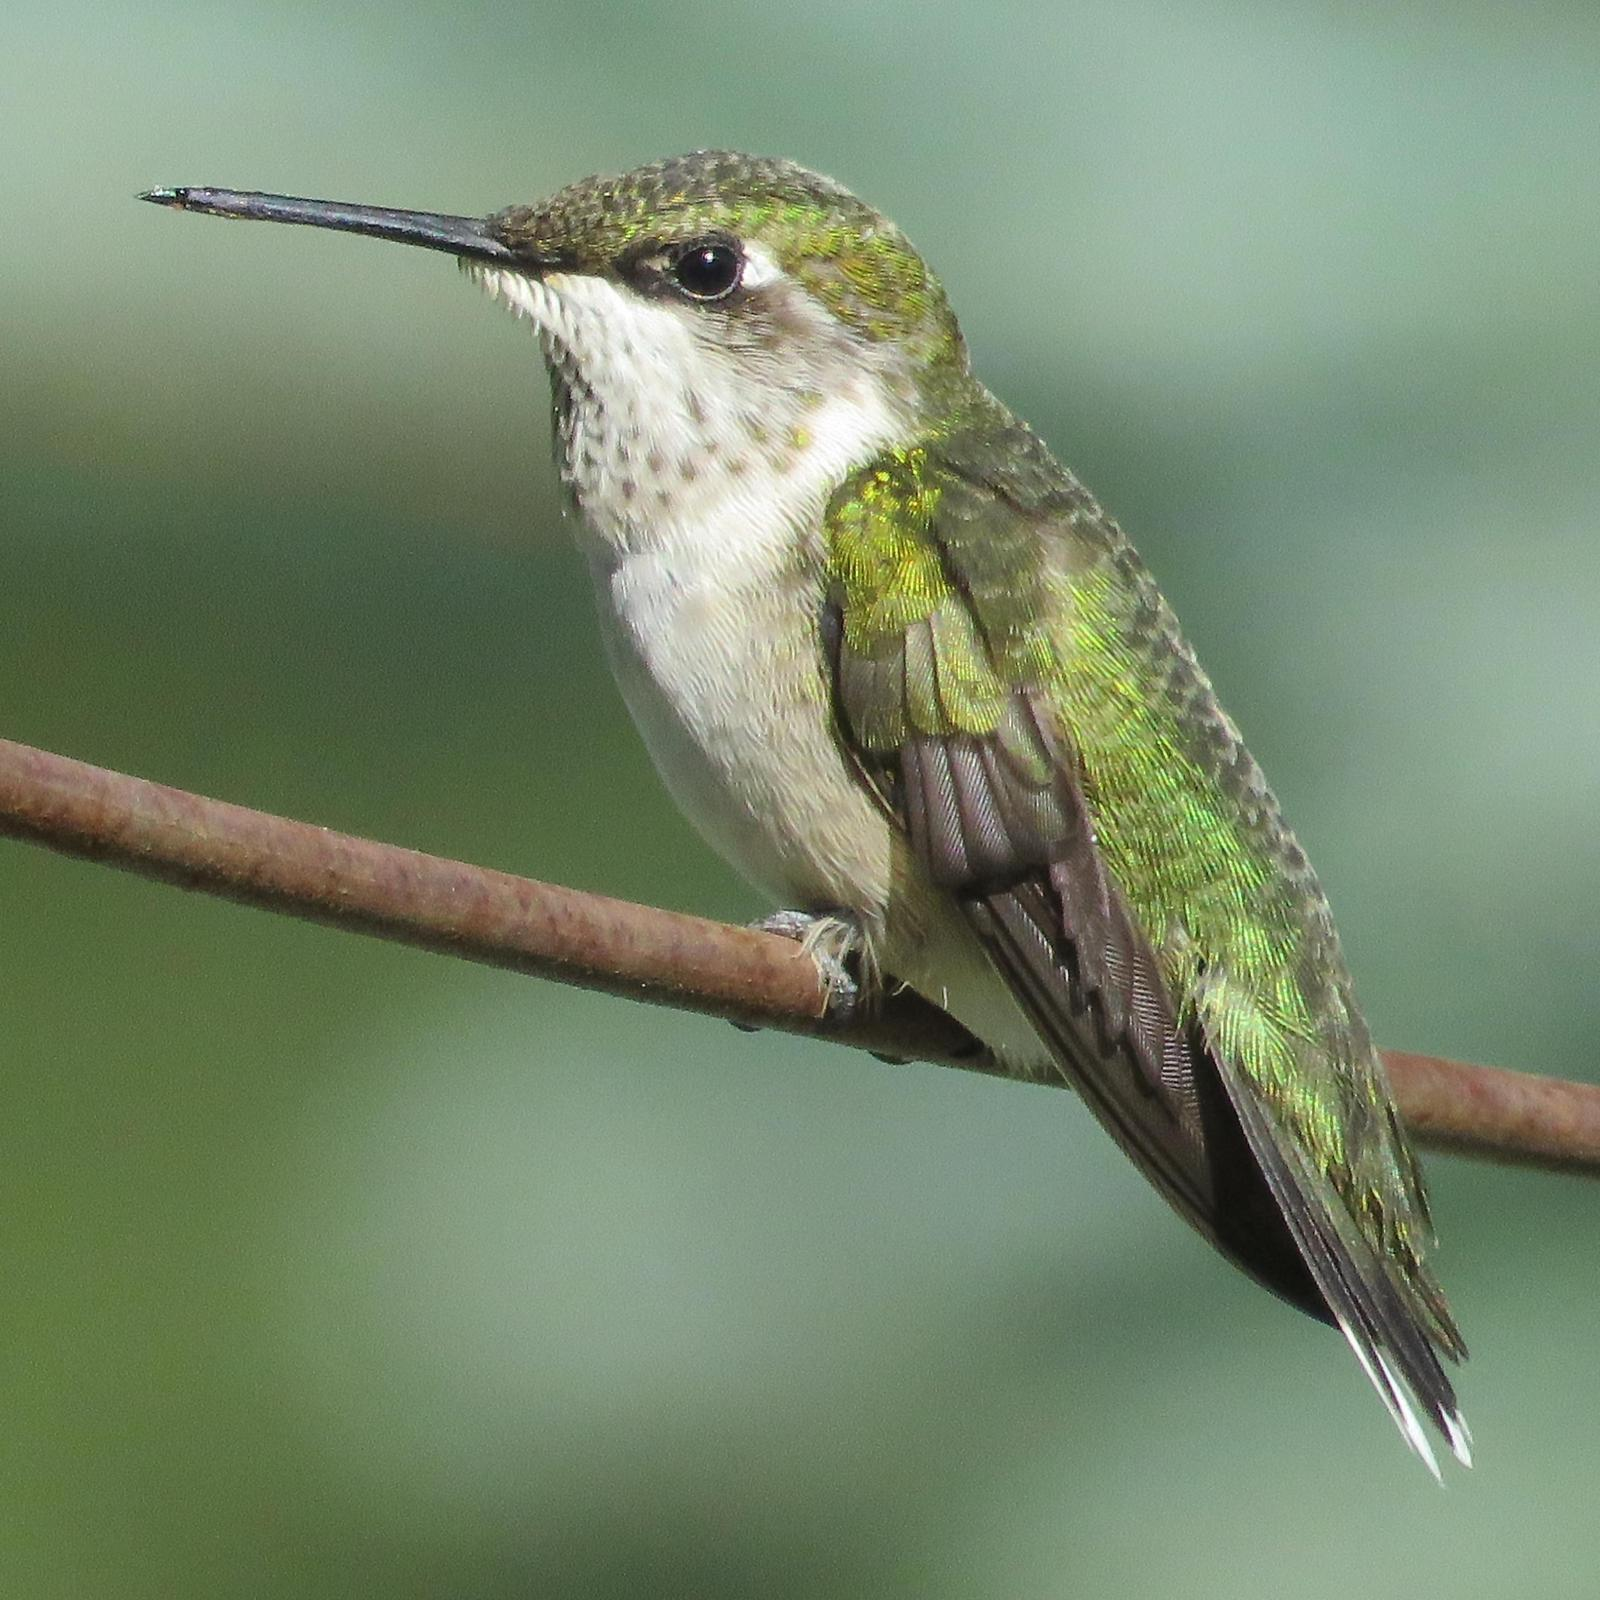 Ruby-throated Hummingbird Photo by Bob Neugebauer